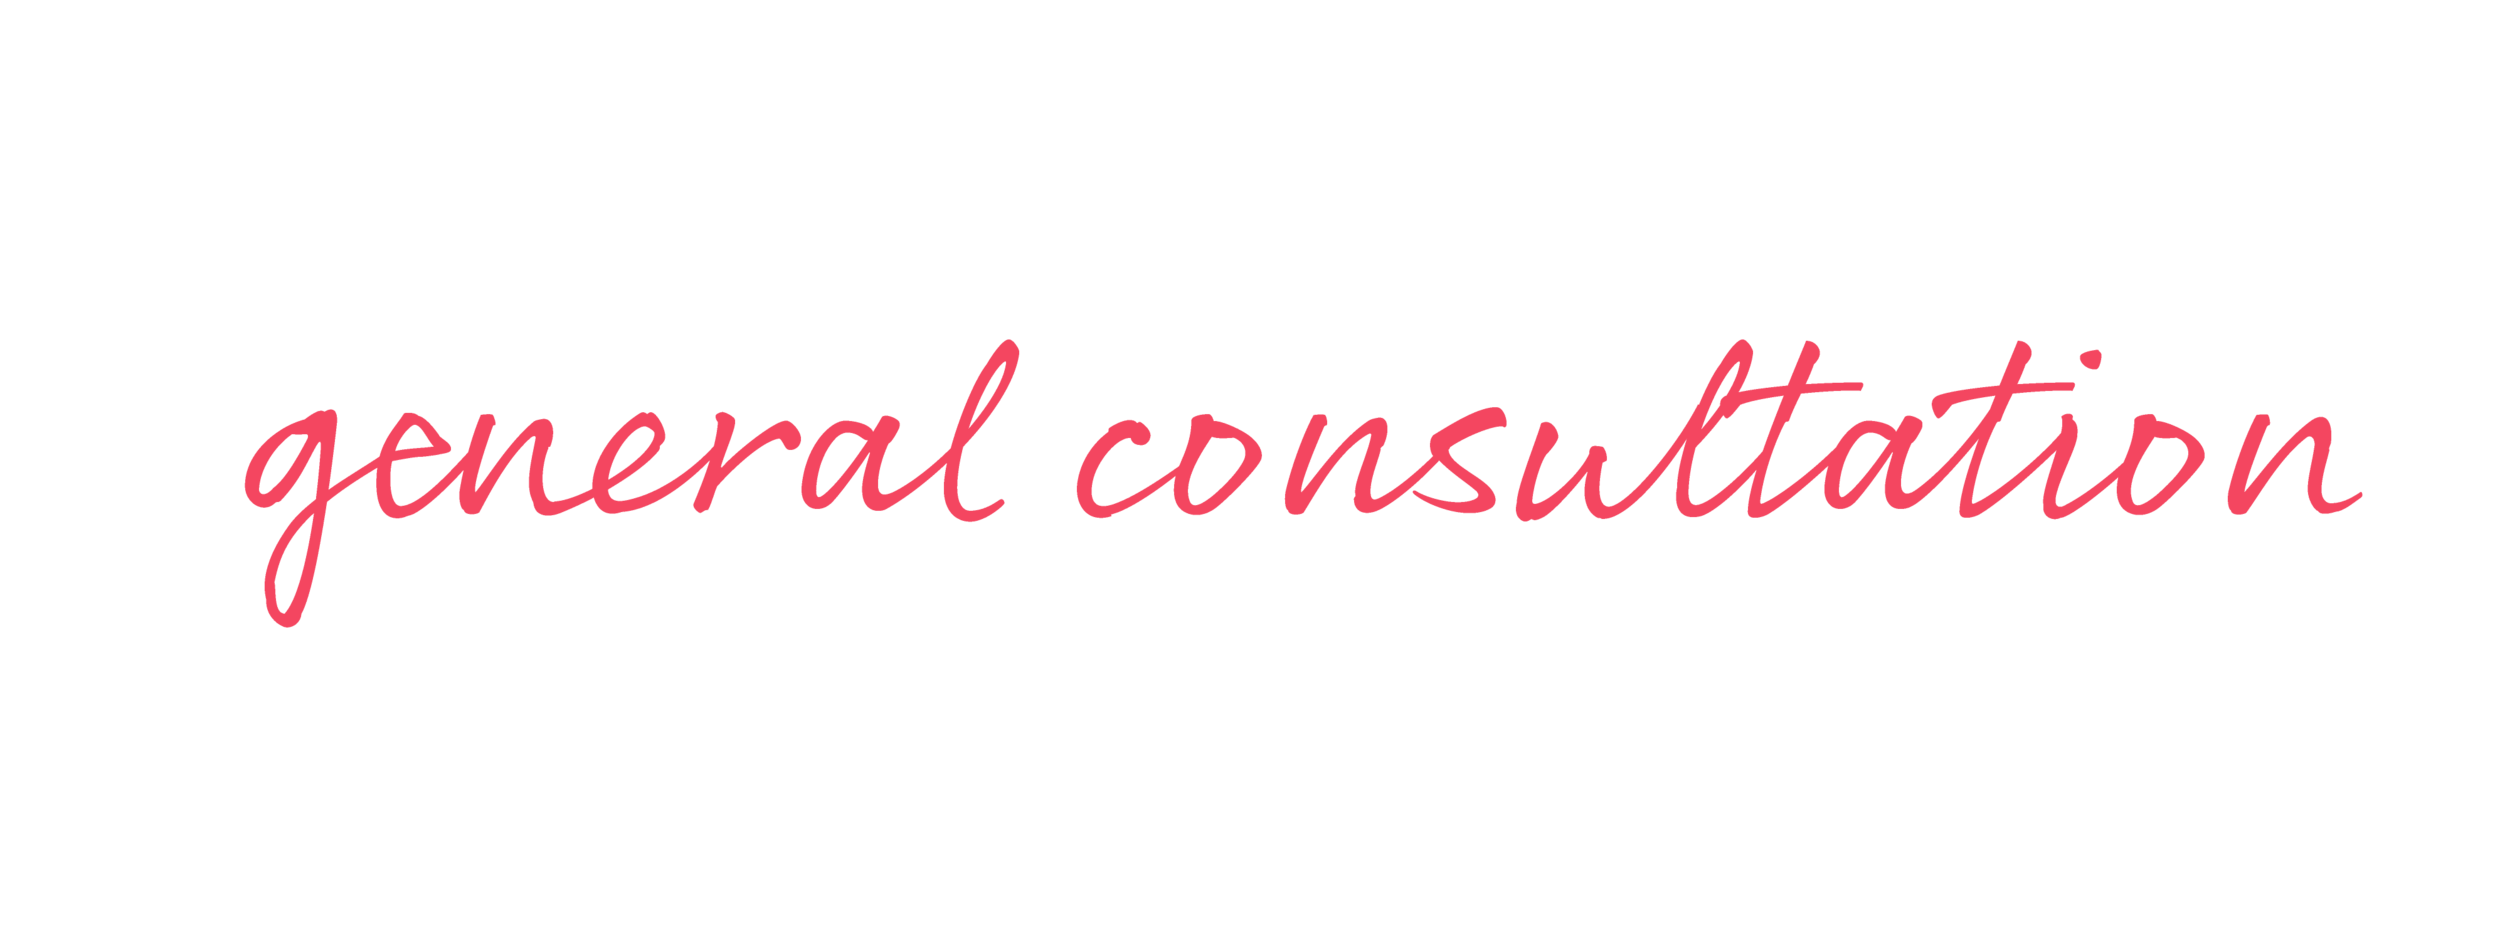 general consulation coral-04.png